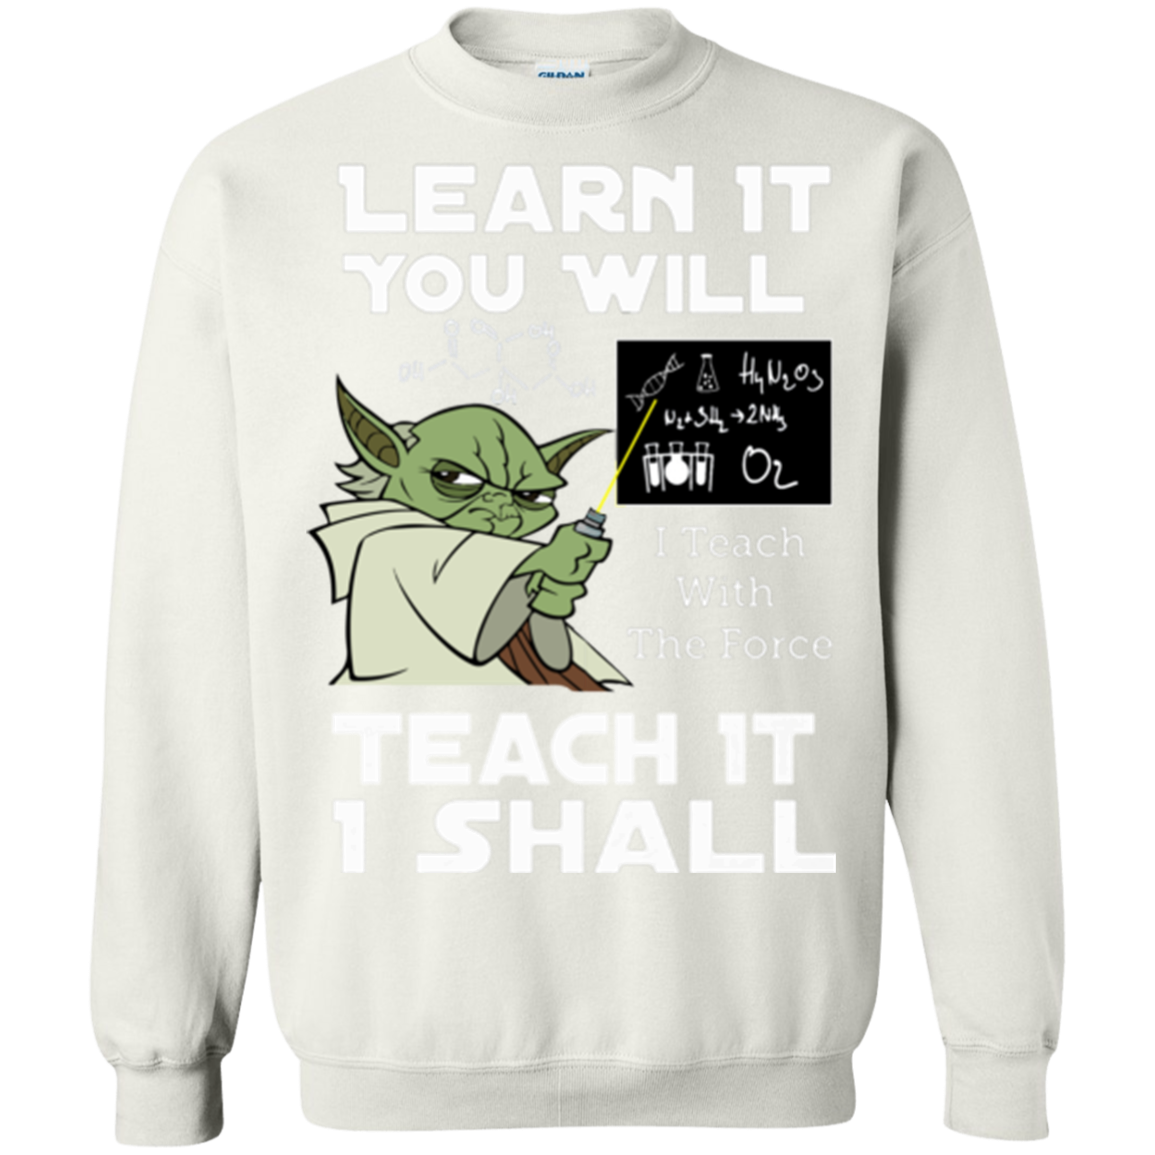 transparent Yoda Clipart Learn It You Will I Teach With The Force Teach It I